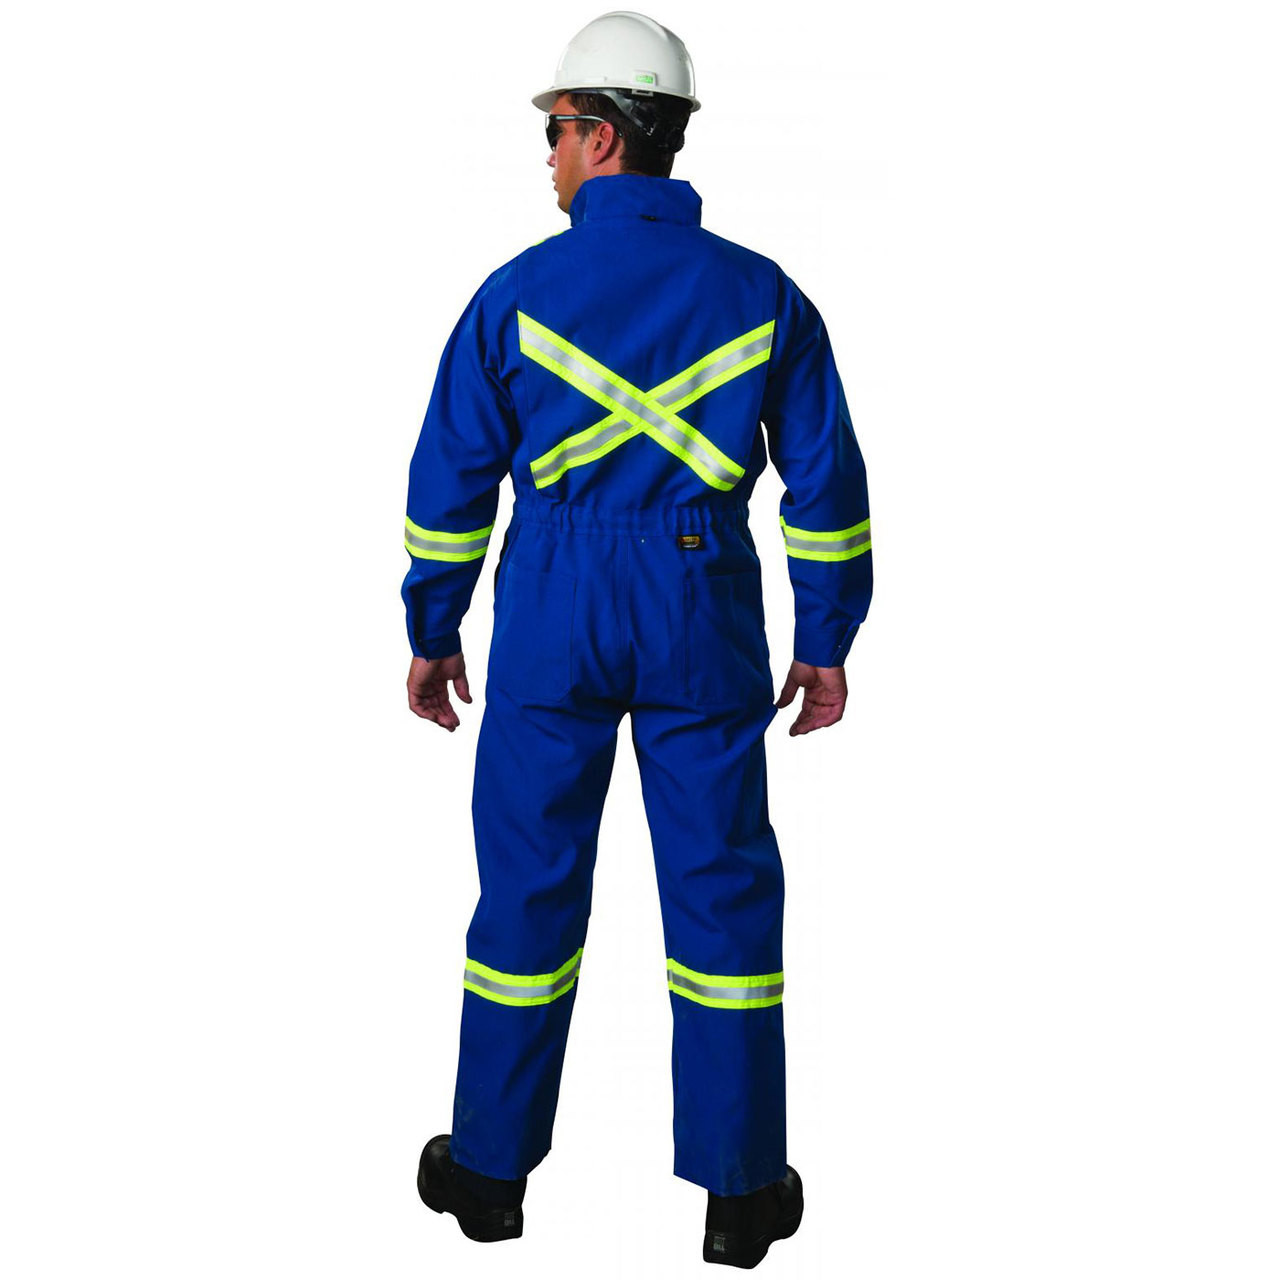 3f09e075b761 Big Bill FR X-Back UltraSoft 7 oz Deluxe Unlined Coveralls 1625US7 Royal  Blue bACK